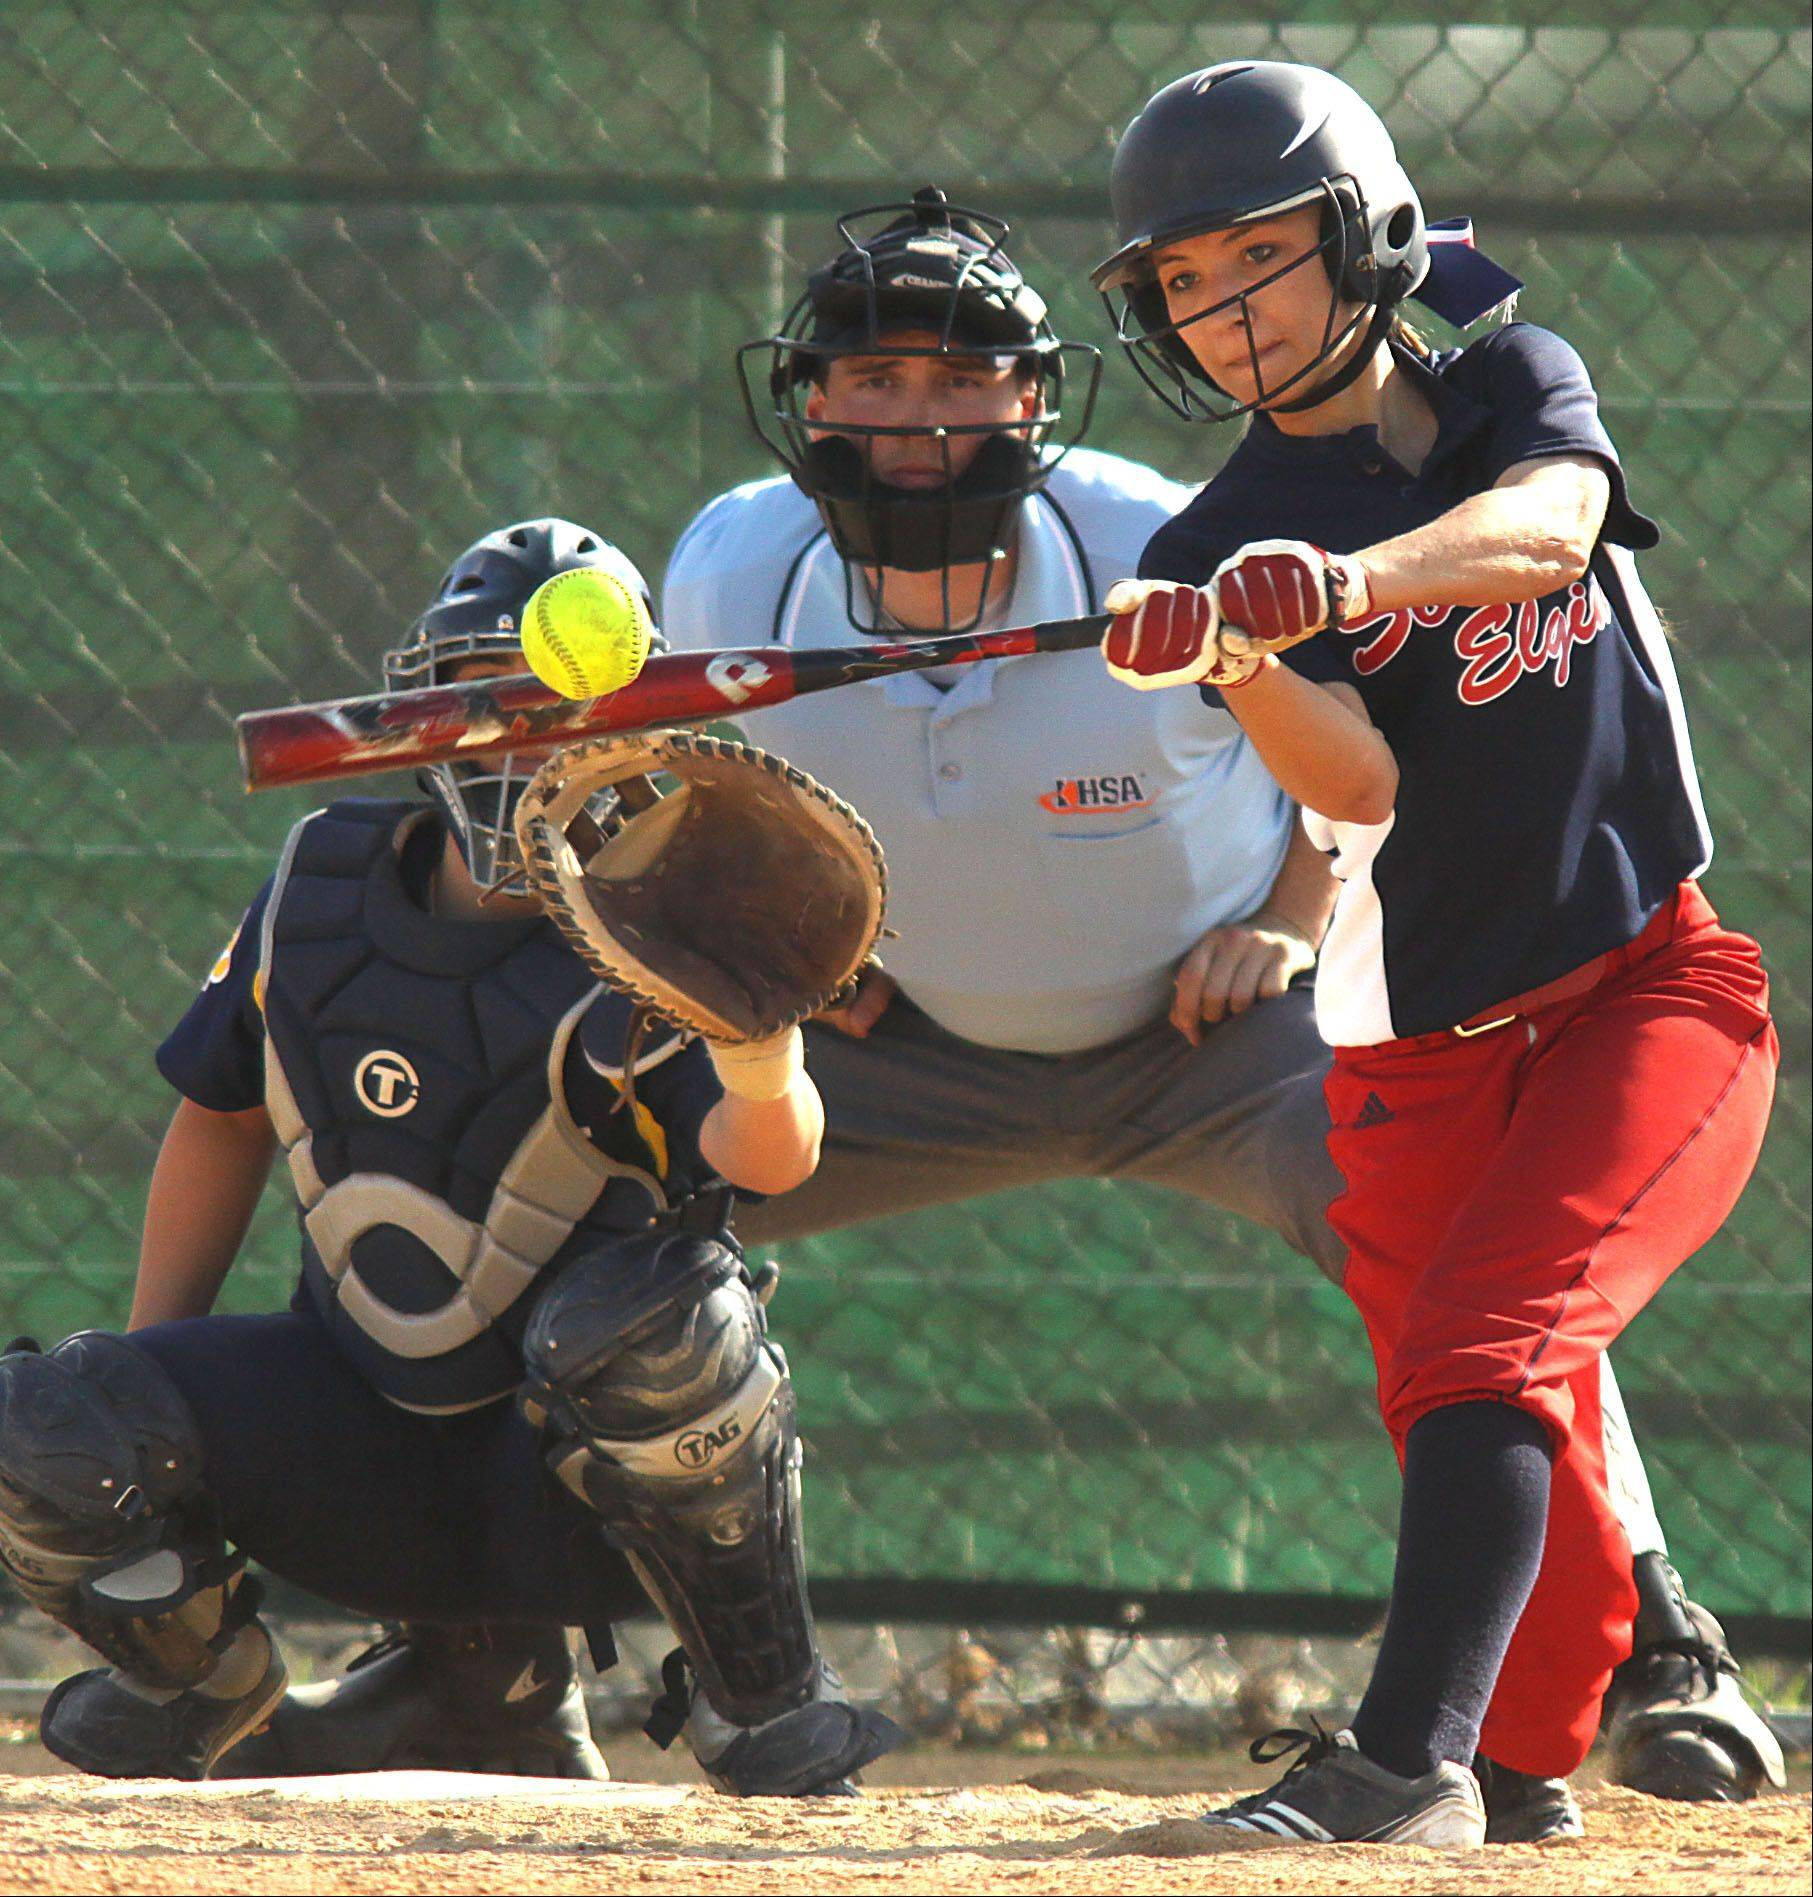 South Elgin's Mallory Mecklenburg connects for a double against Neuqua Valley at South Elgin Wednesday.